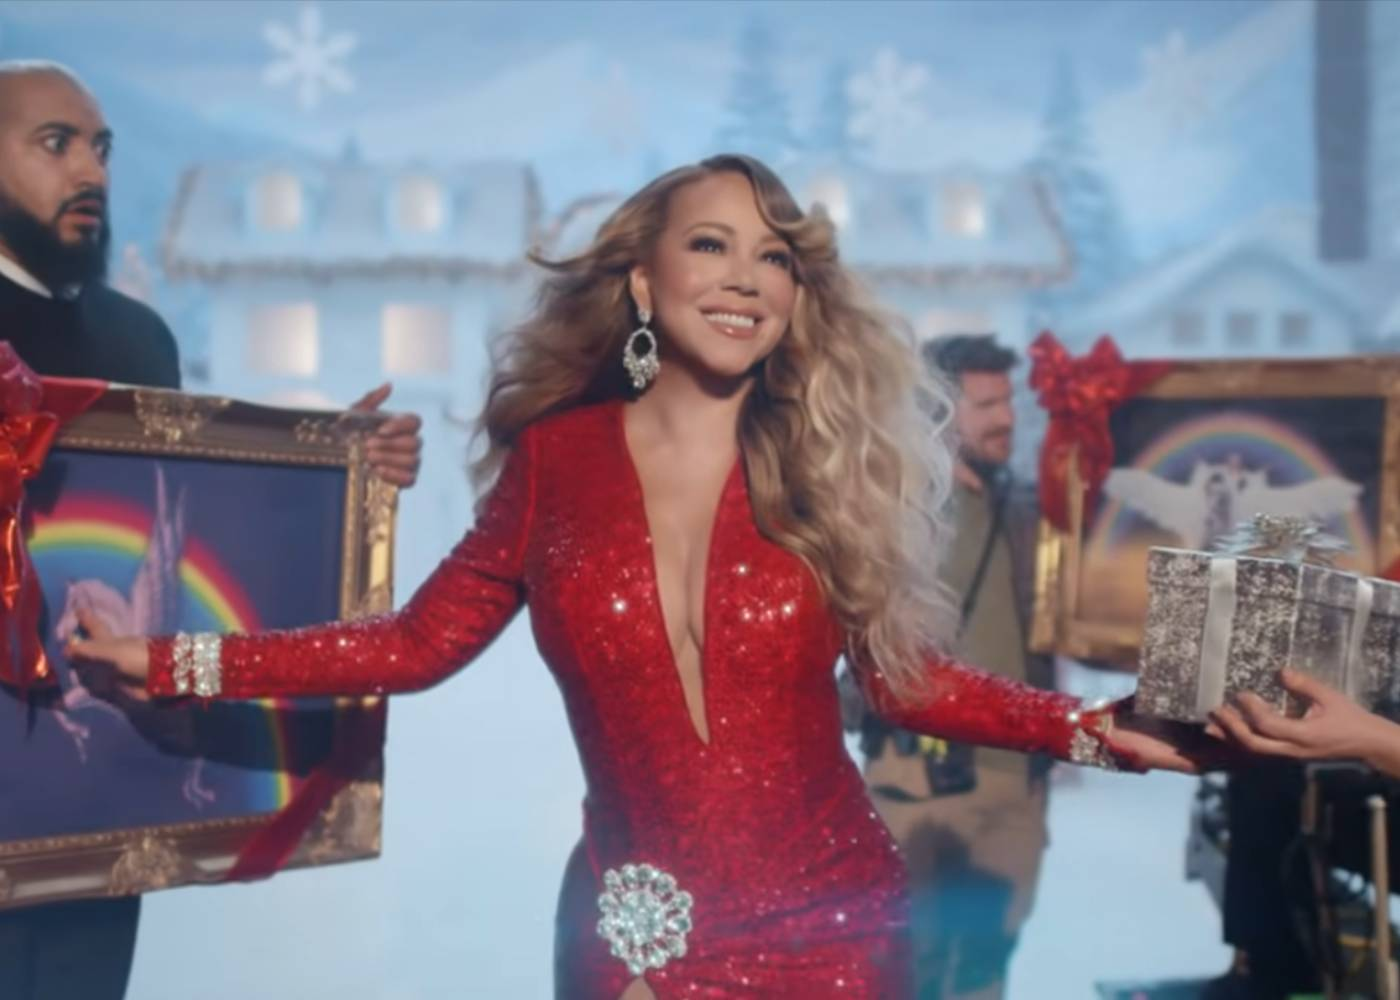 Mariah Carey: The undisputed Queen of Christmas